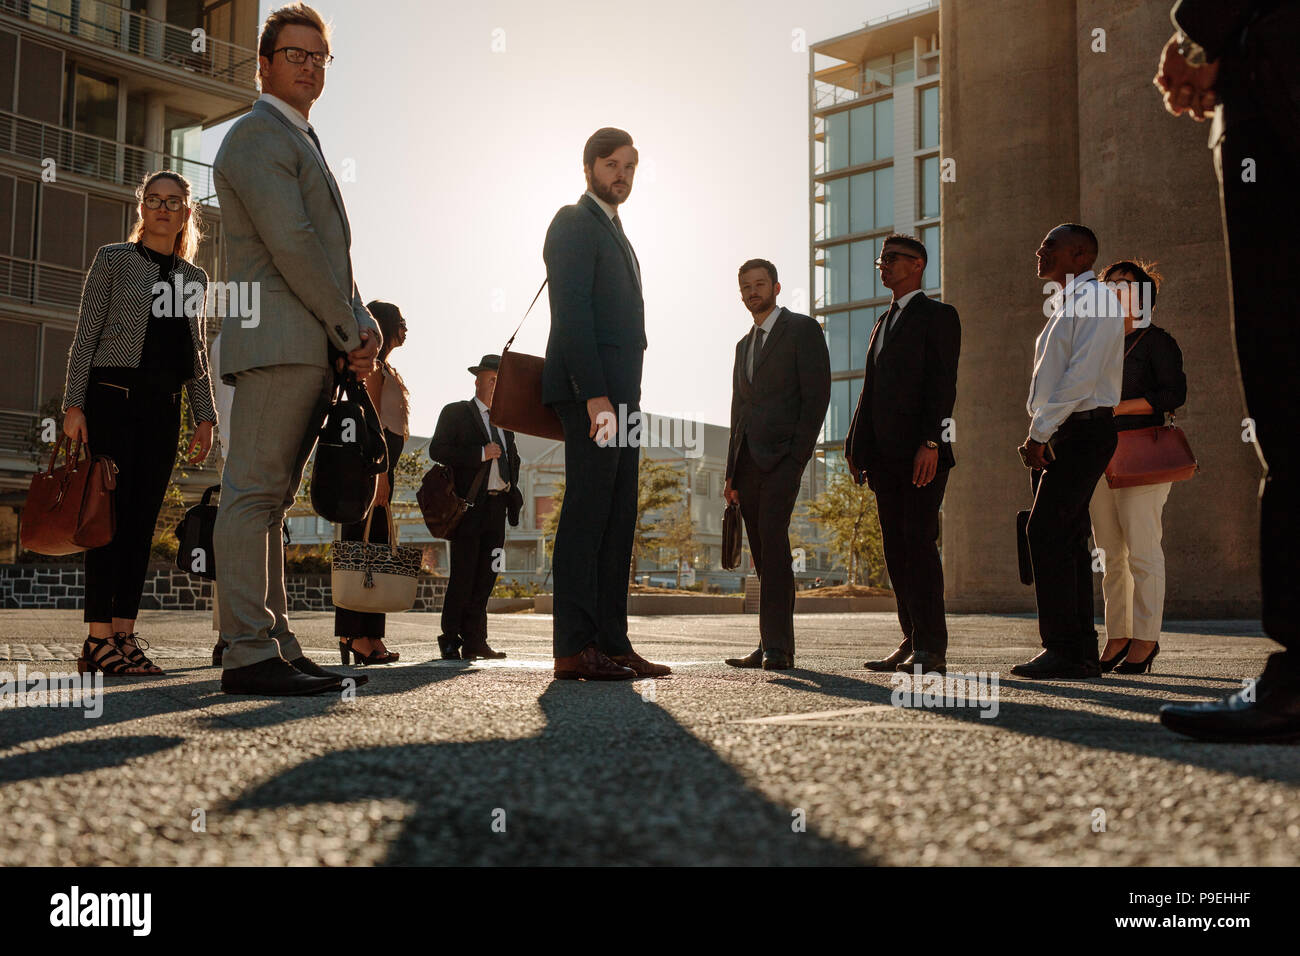 Business people looking at camera. Office going people standing on a busy street with sun flare in the background. - Stock Image